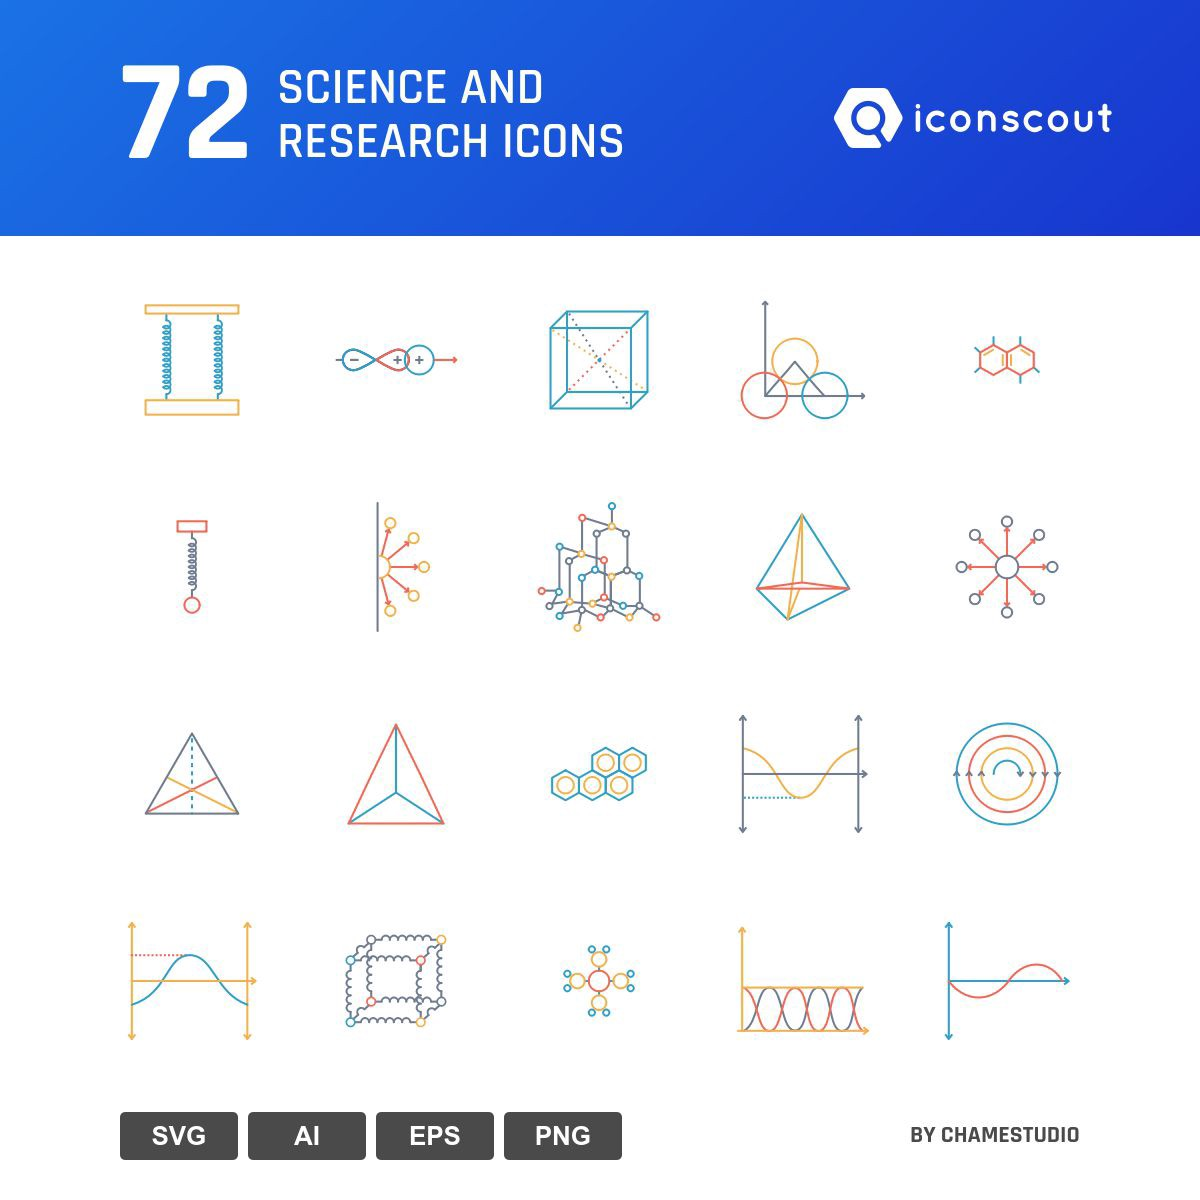 Science And Research icons by Chamestudio